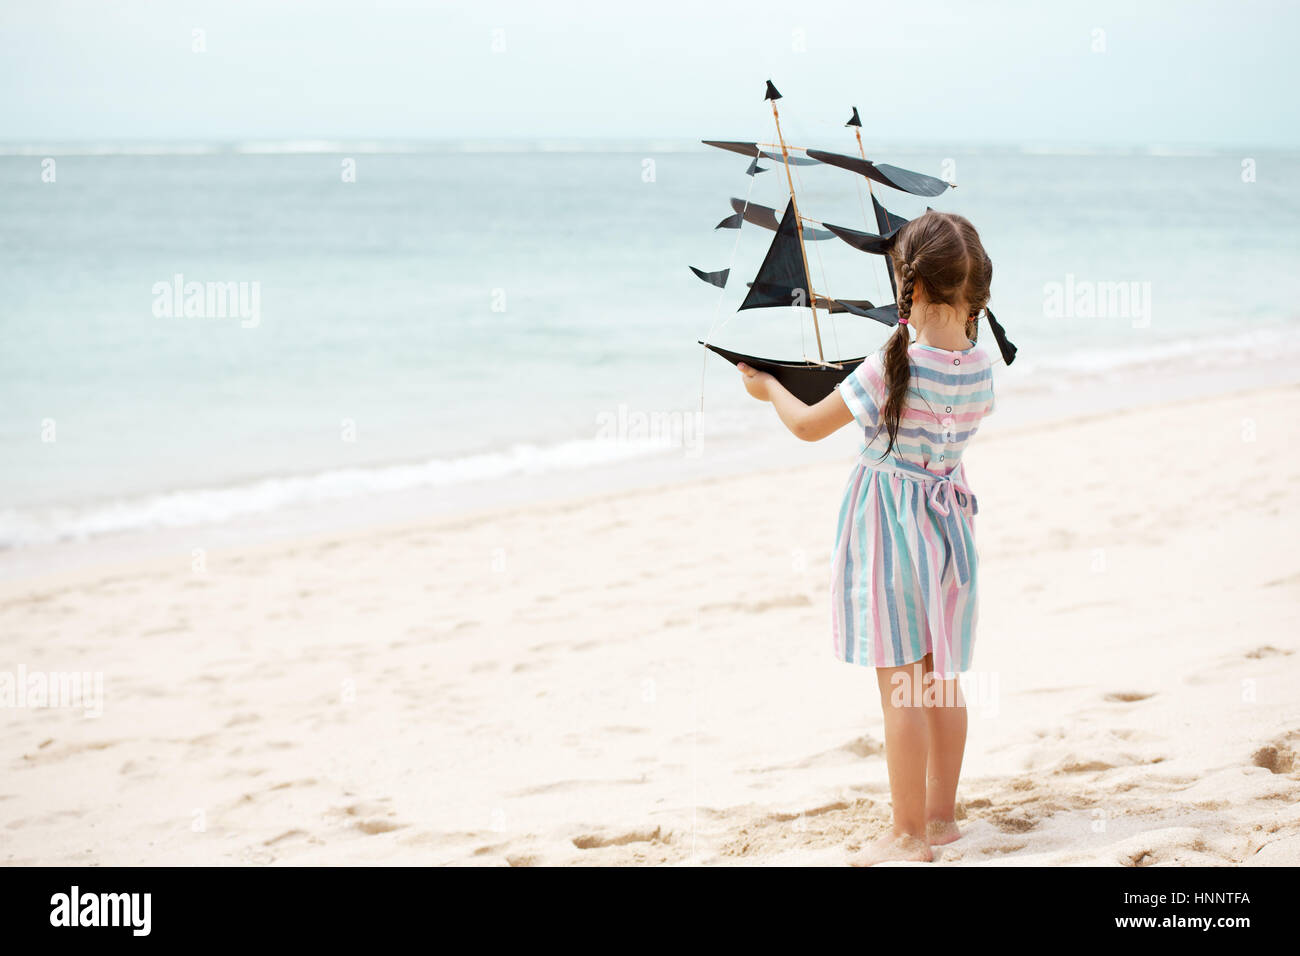 Cute little girl playing on the beach flying ship kite. Child enjoying summer family vacation at the sea. - Stock Image